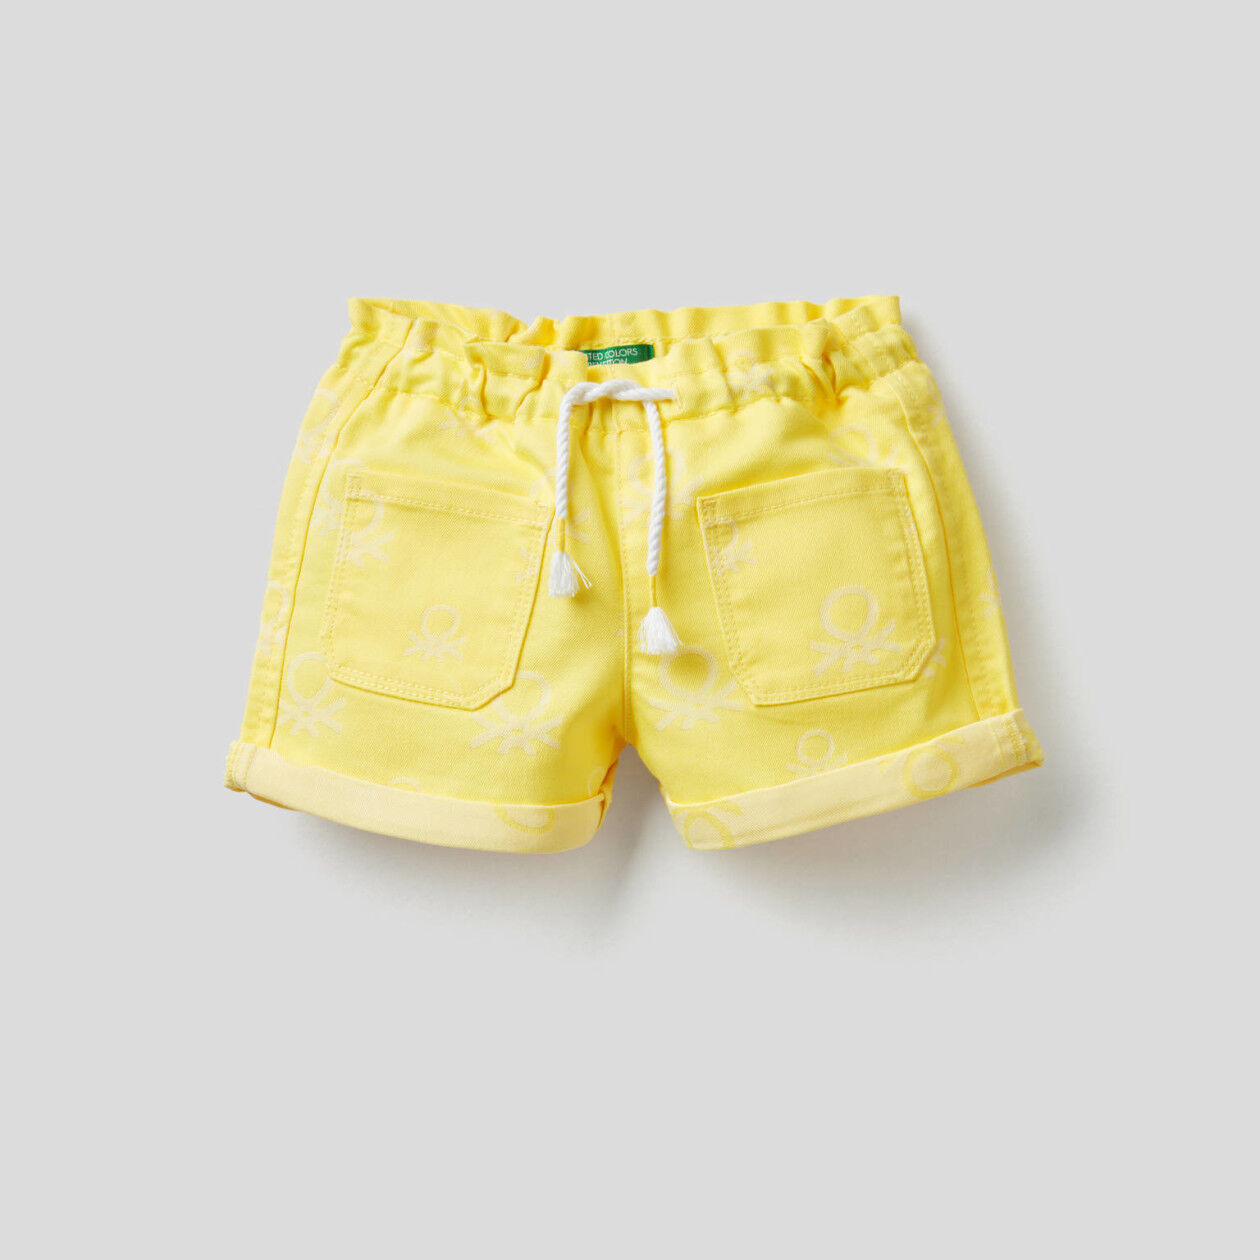 Shorts in logoed denim